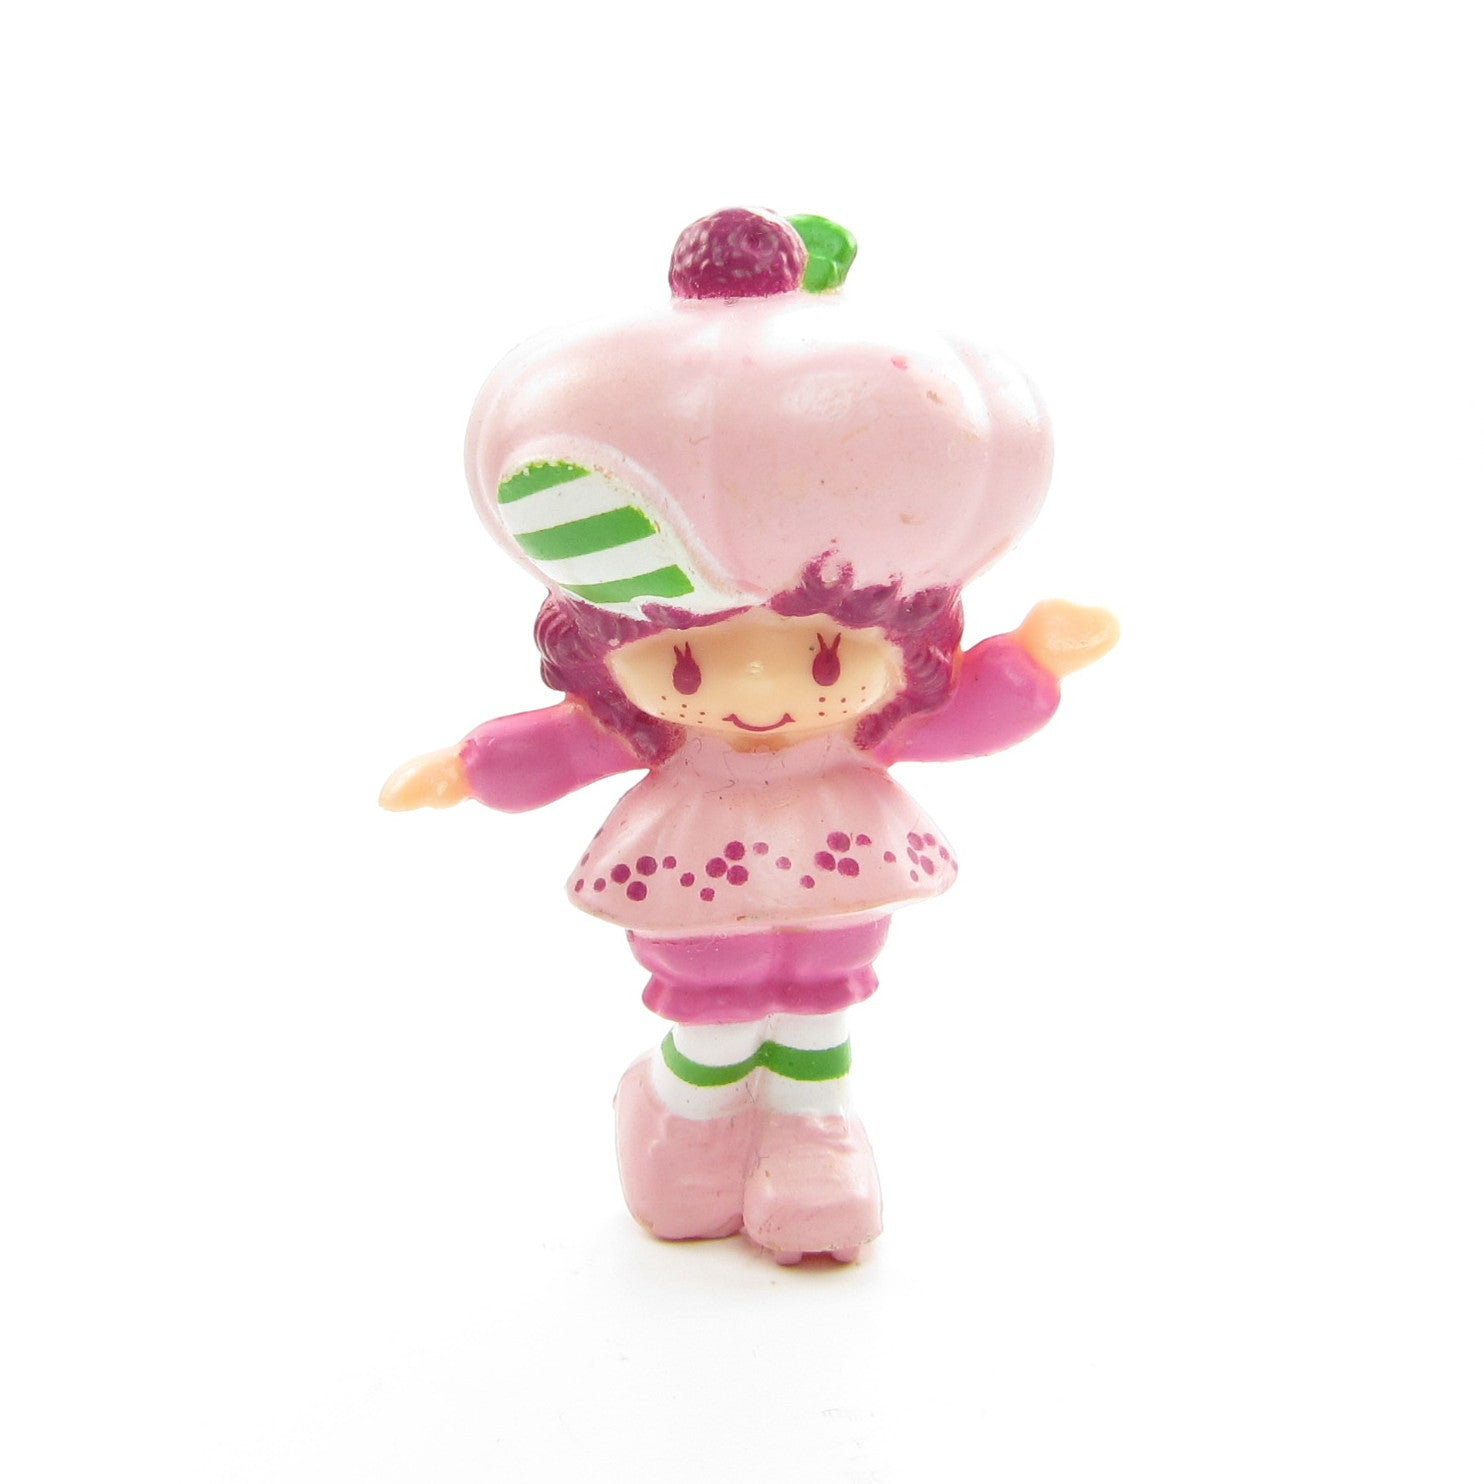 Raspberry Tart on Roller Skates miniature figurine